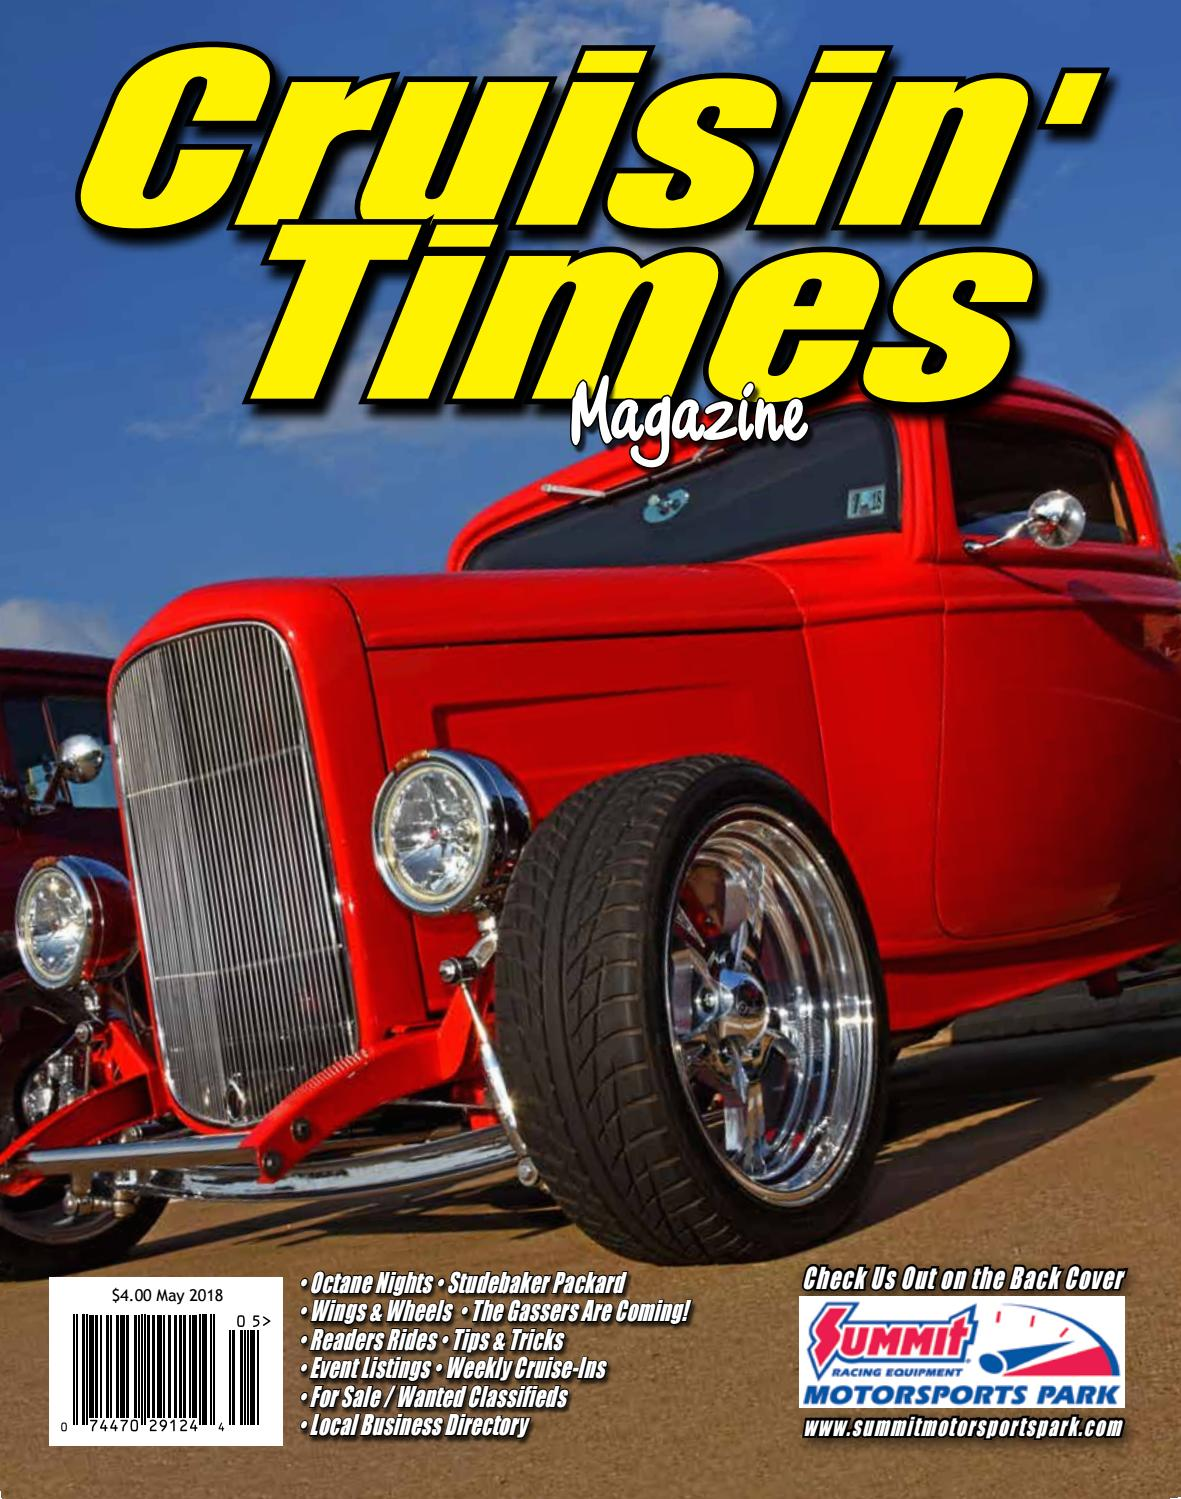 e3c19d614 Cruisin Times Magazine - May 2018 Issue by Cruisin' Times Magazine - issuu